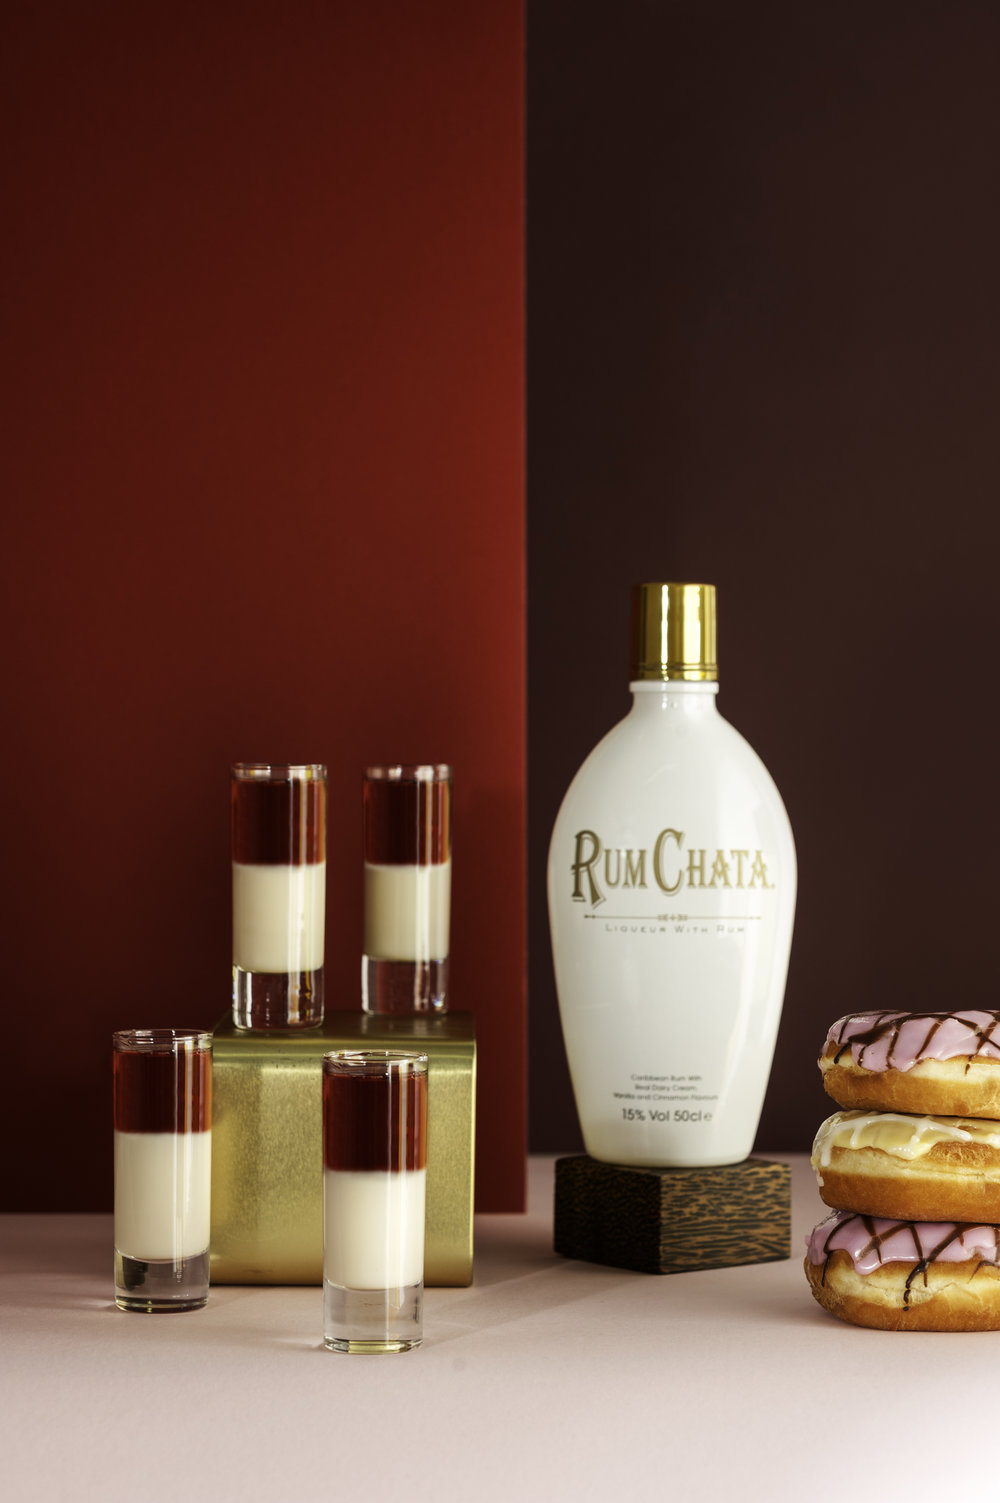 rum-chata-jam-donught-w-bottle_ML42970-RT.jpg